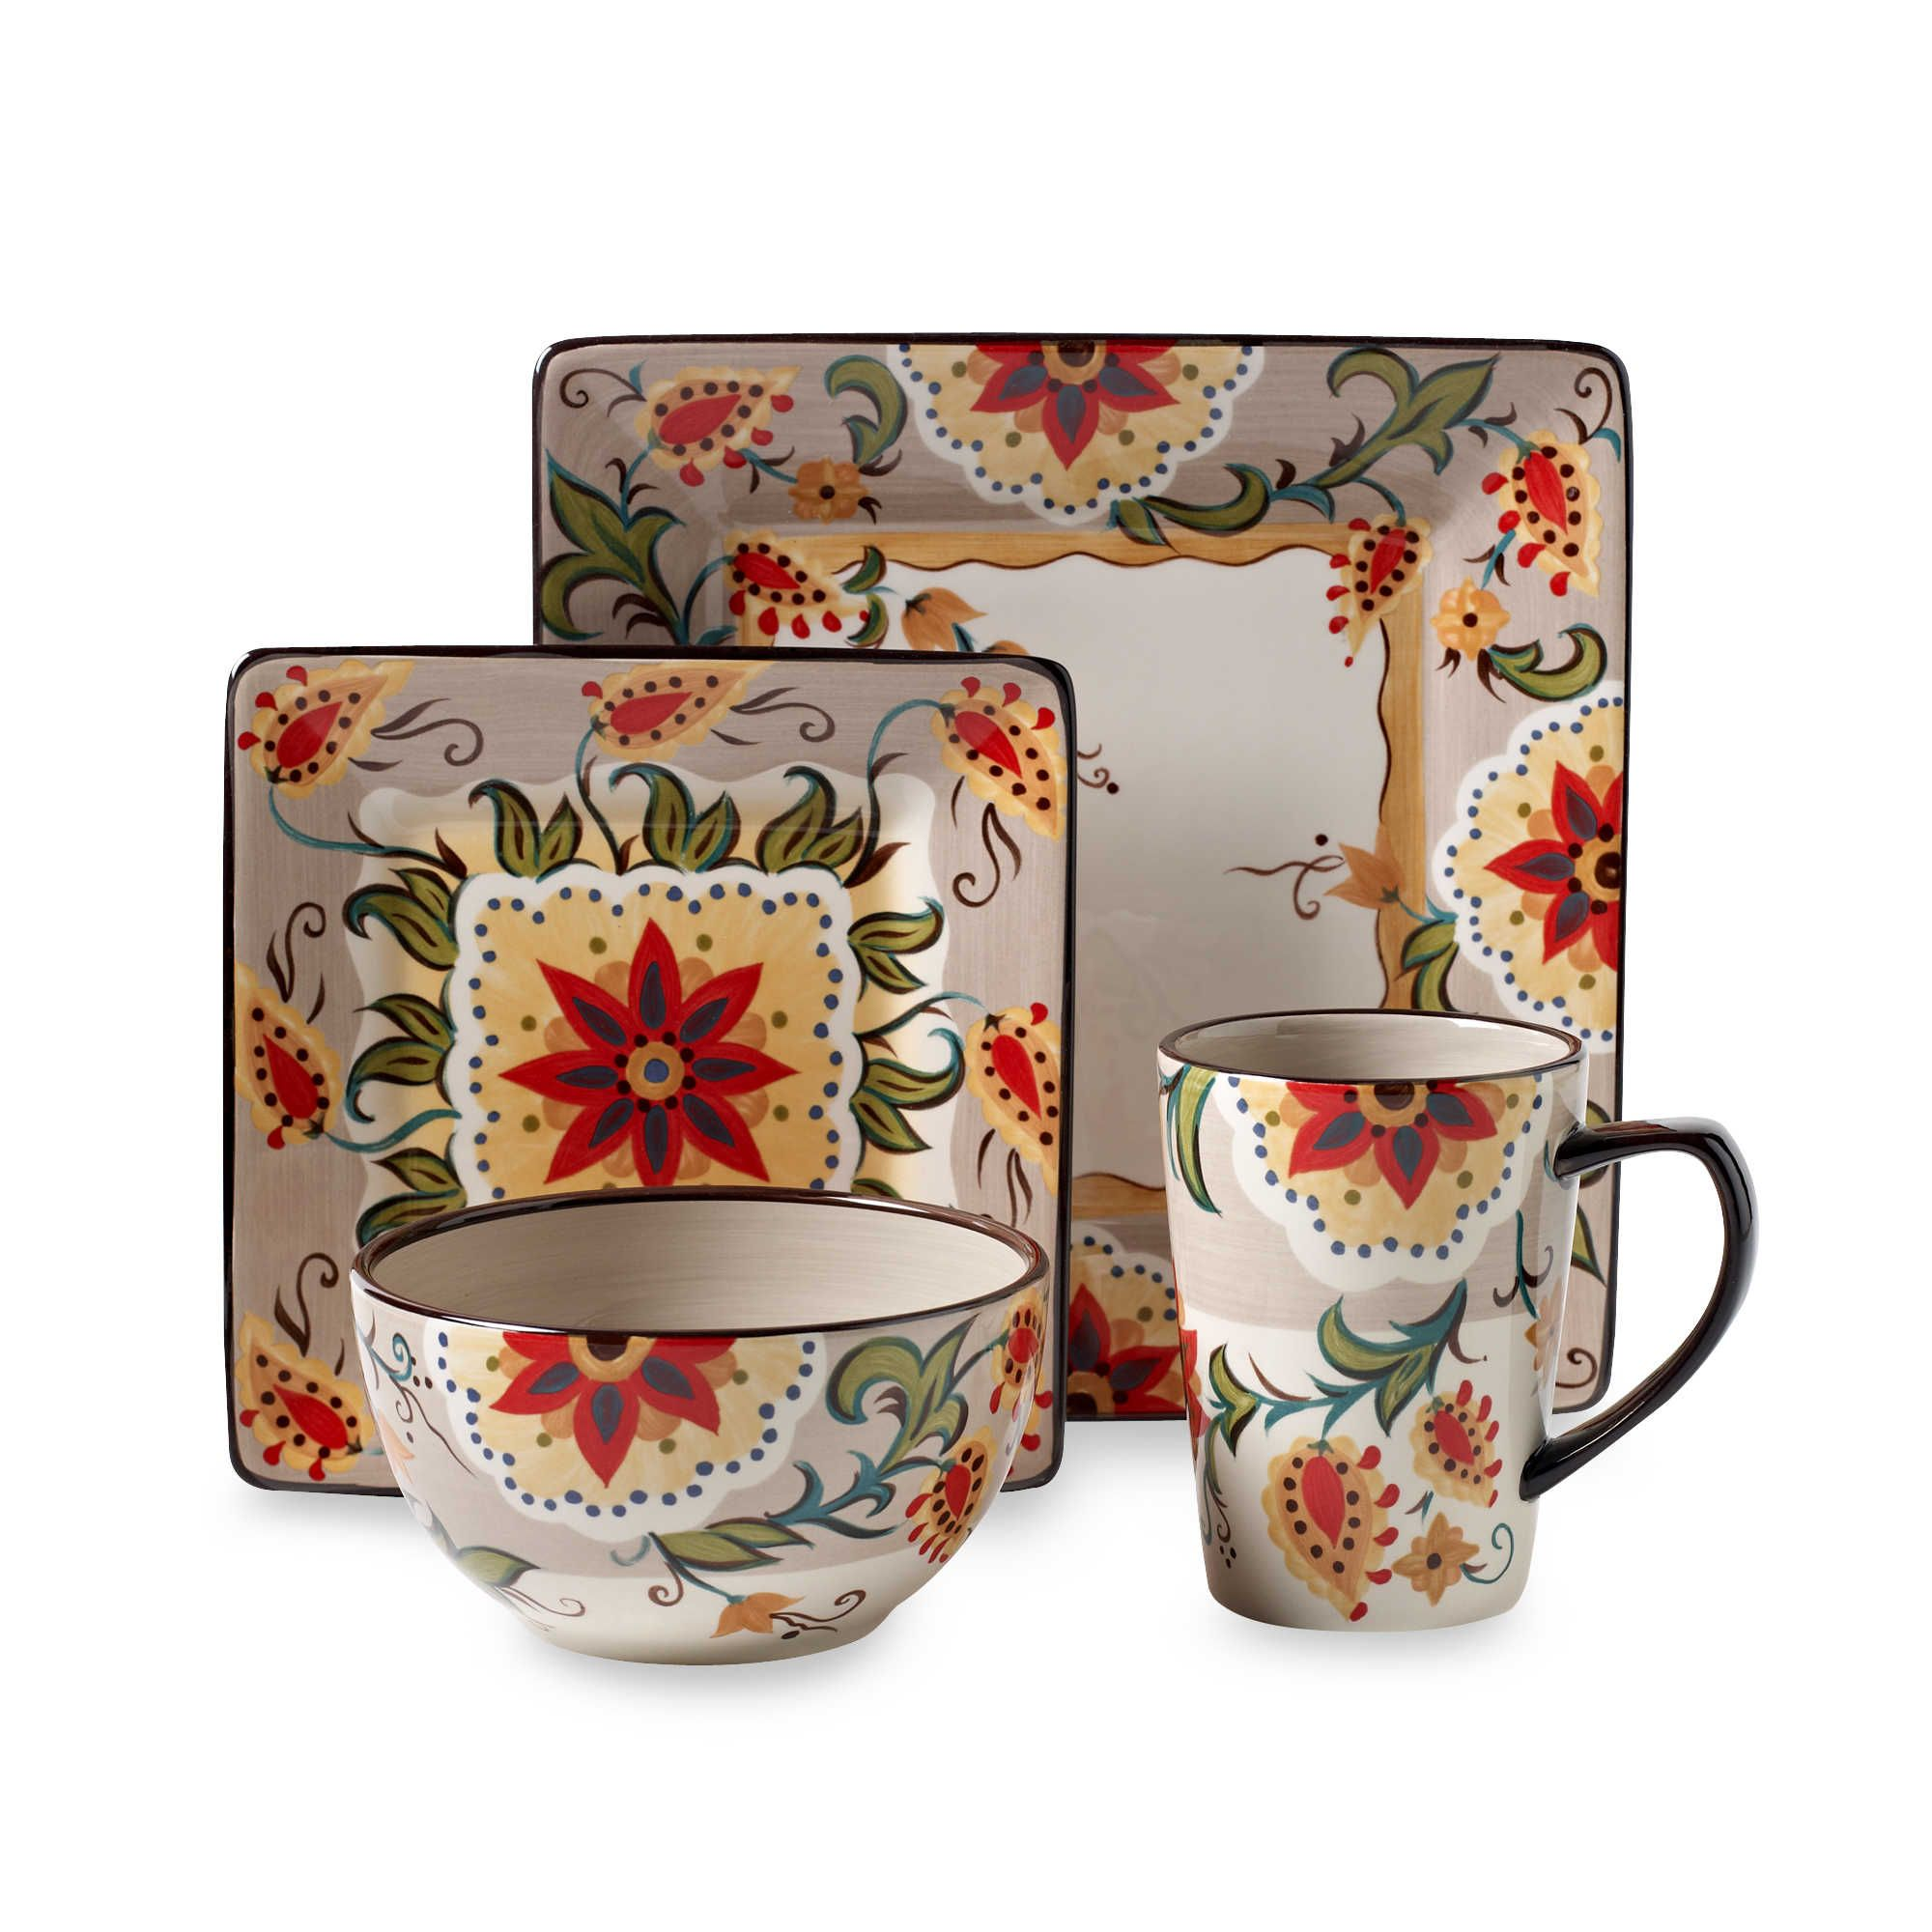 Tabletops Unlimited® Misto Odessa Square Dinnerware Collection  sc 1 st  Pinterest & Tabletops Unlimited® Misto Odessa Square Dinnerware Collection ...